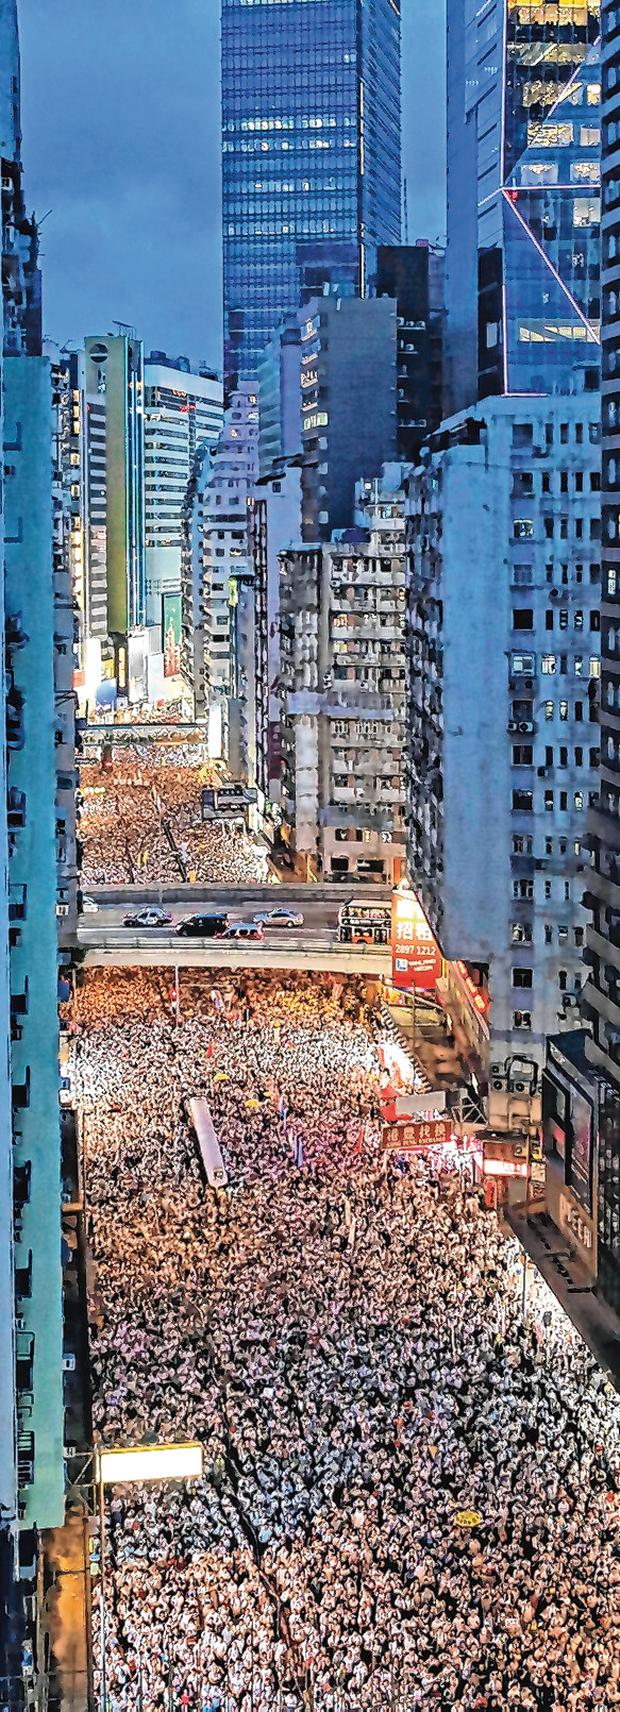 A sea of protesters marches through the centre of the city. Photo: AP